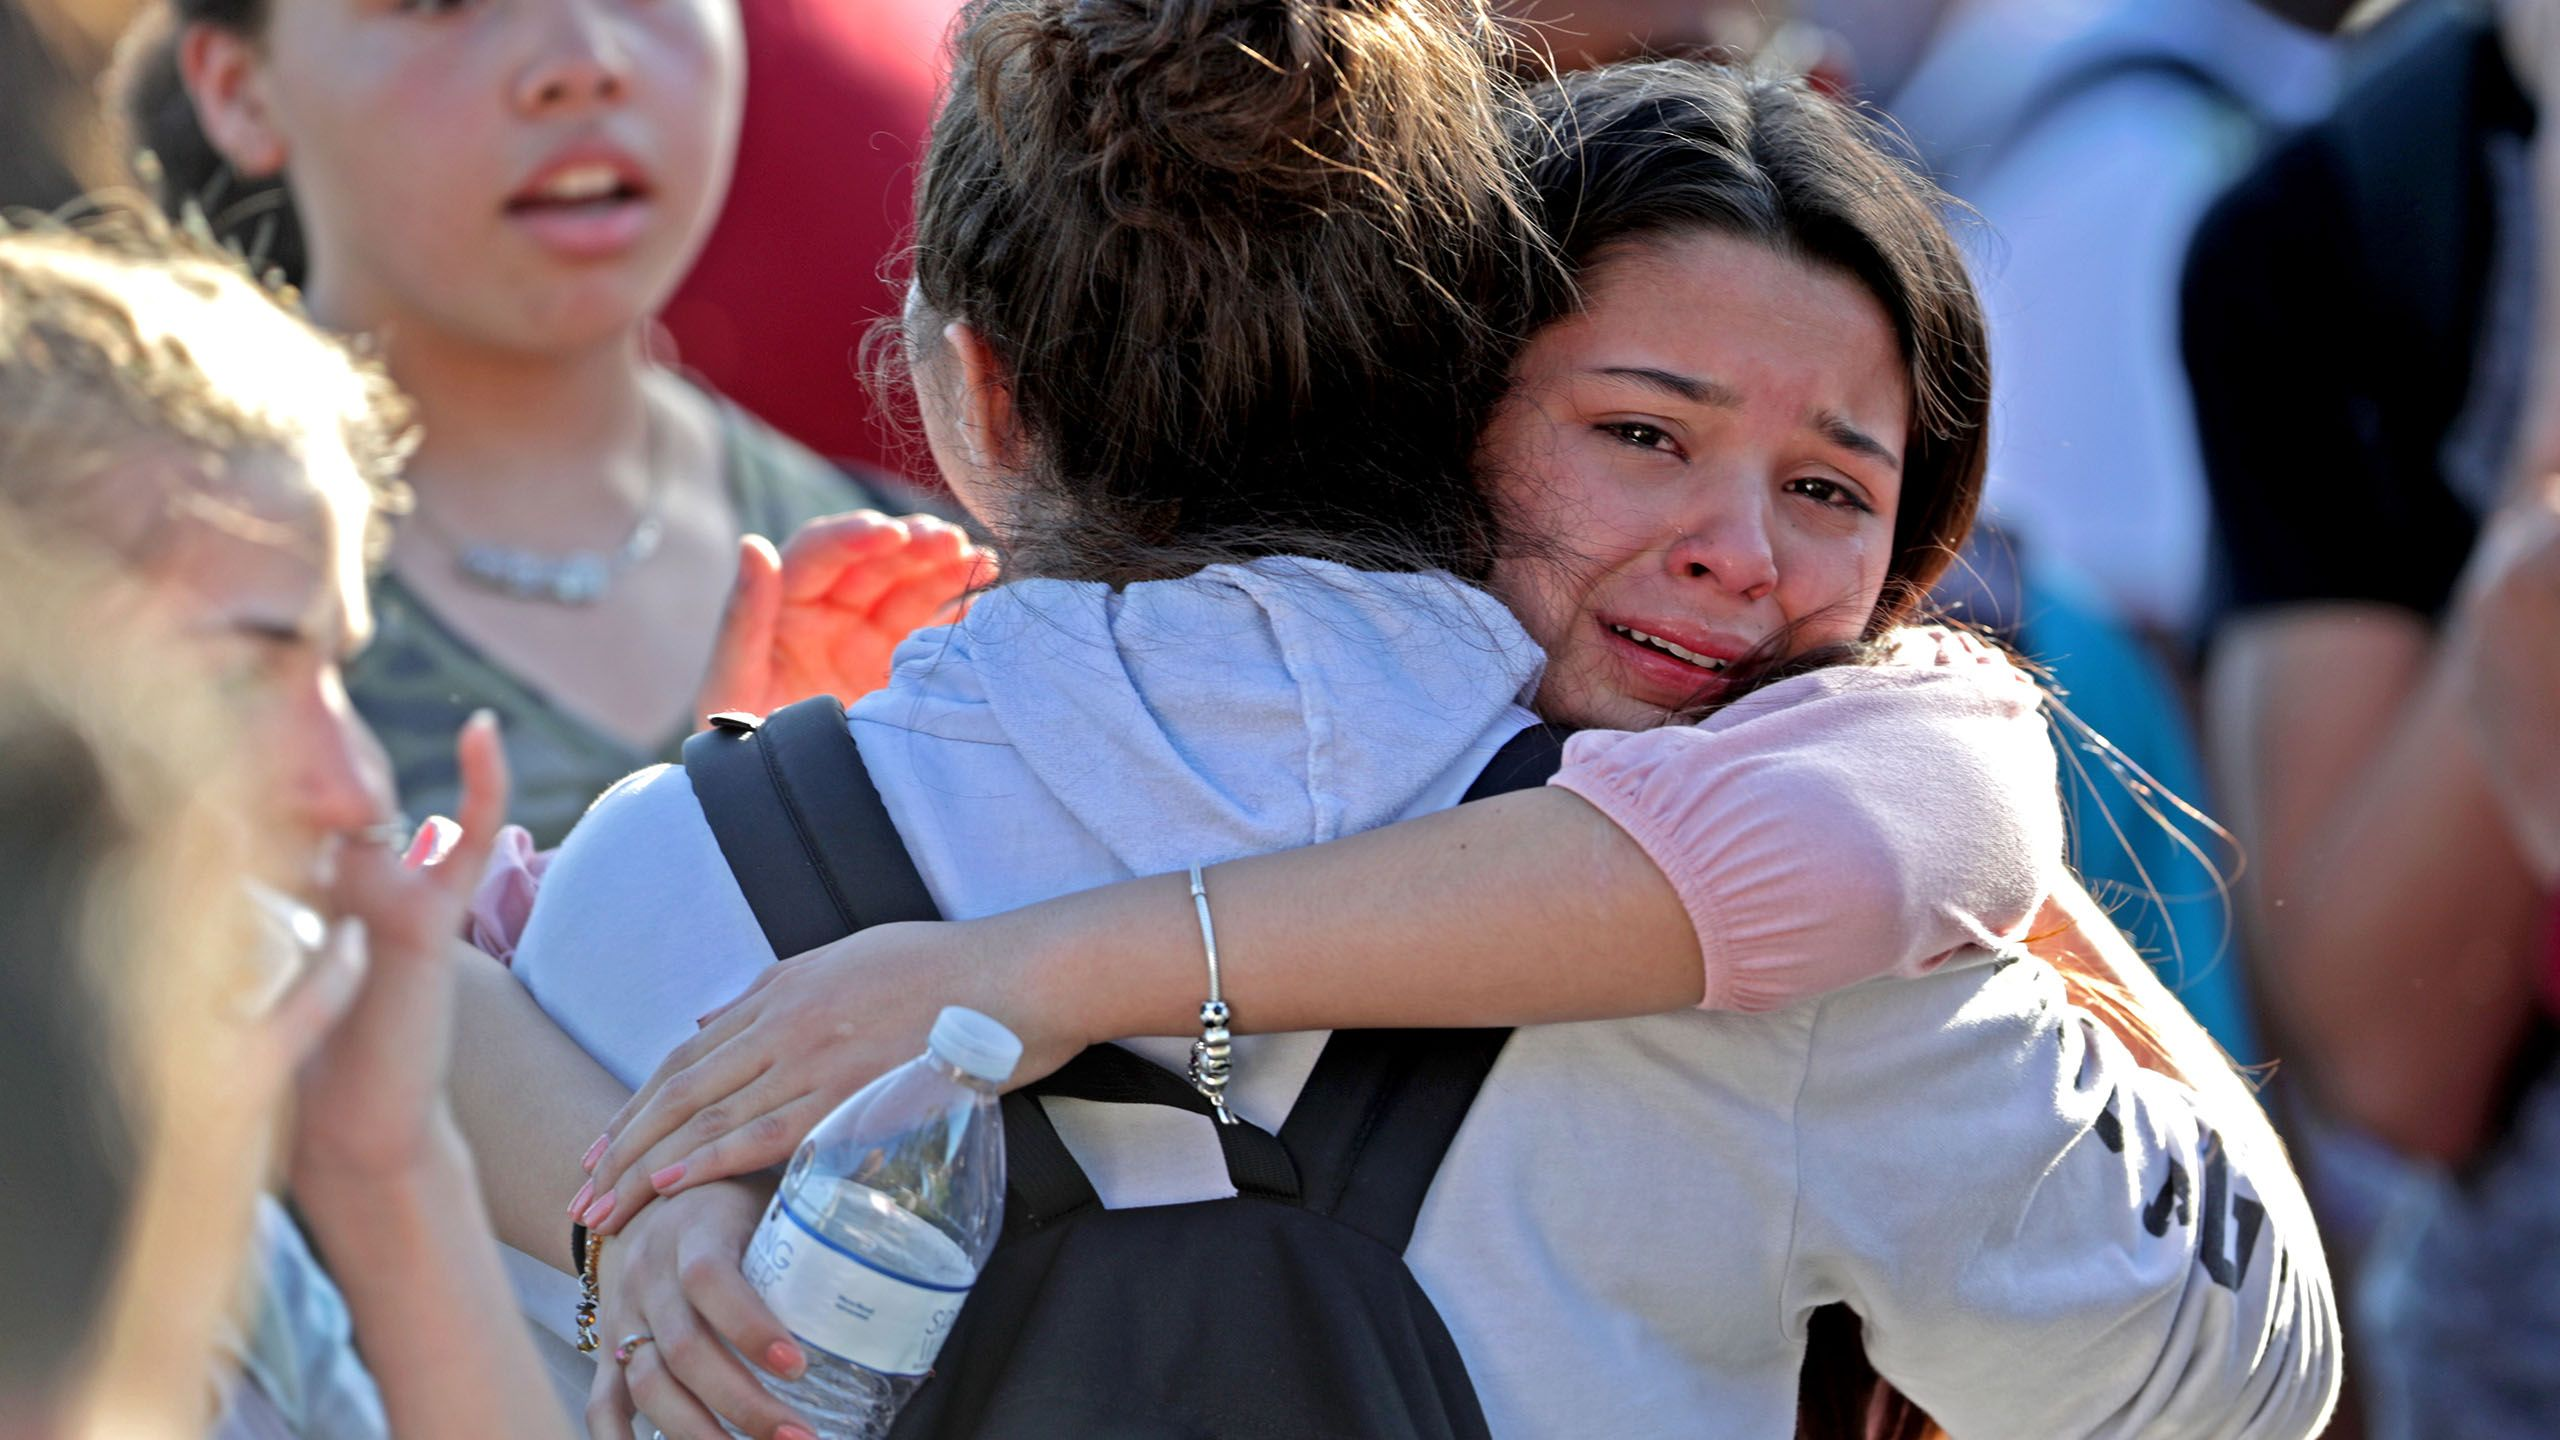 What Happens to Those Who Survive School Shootings